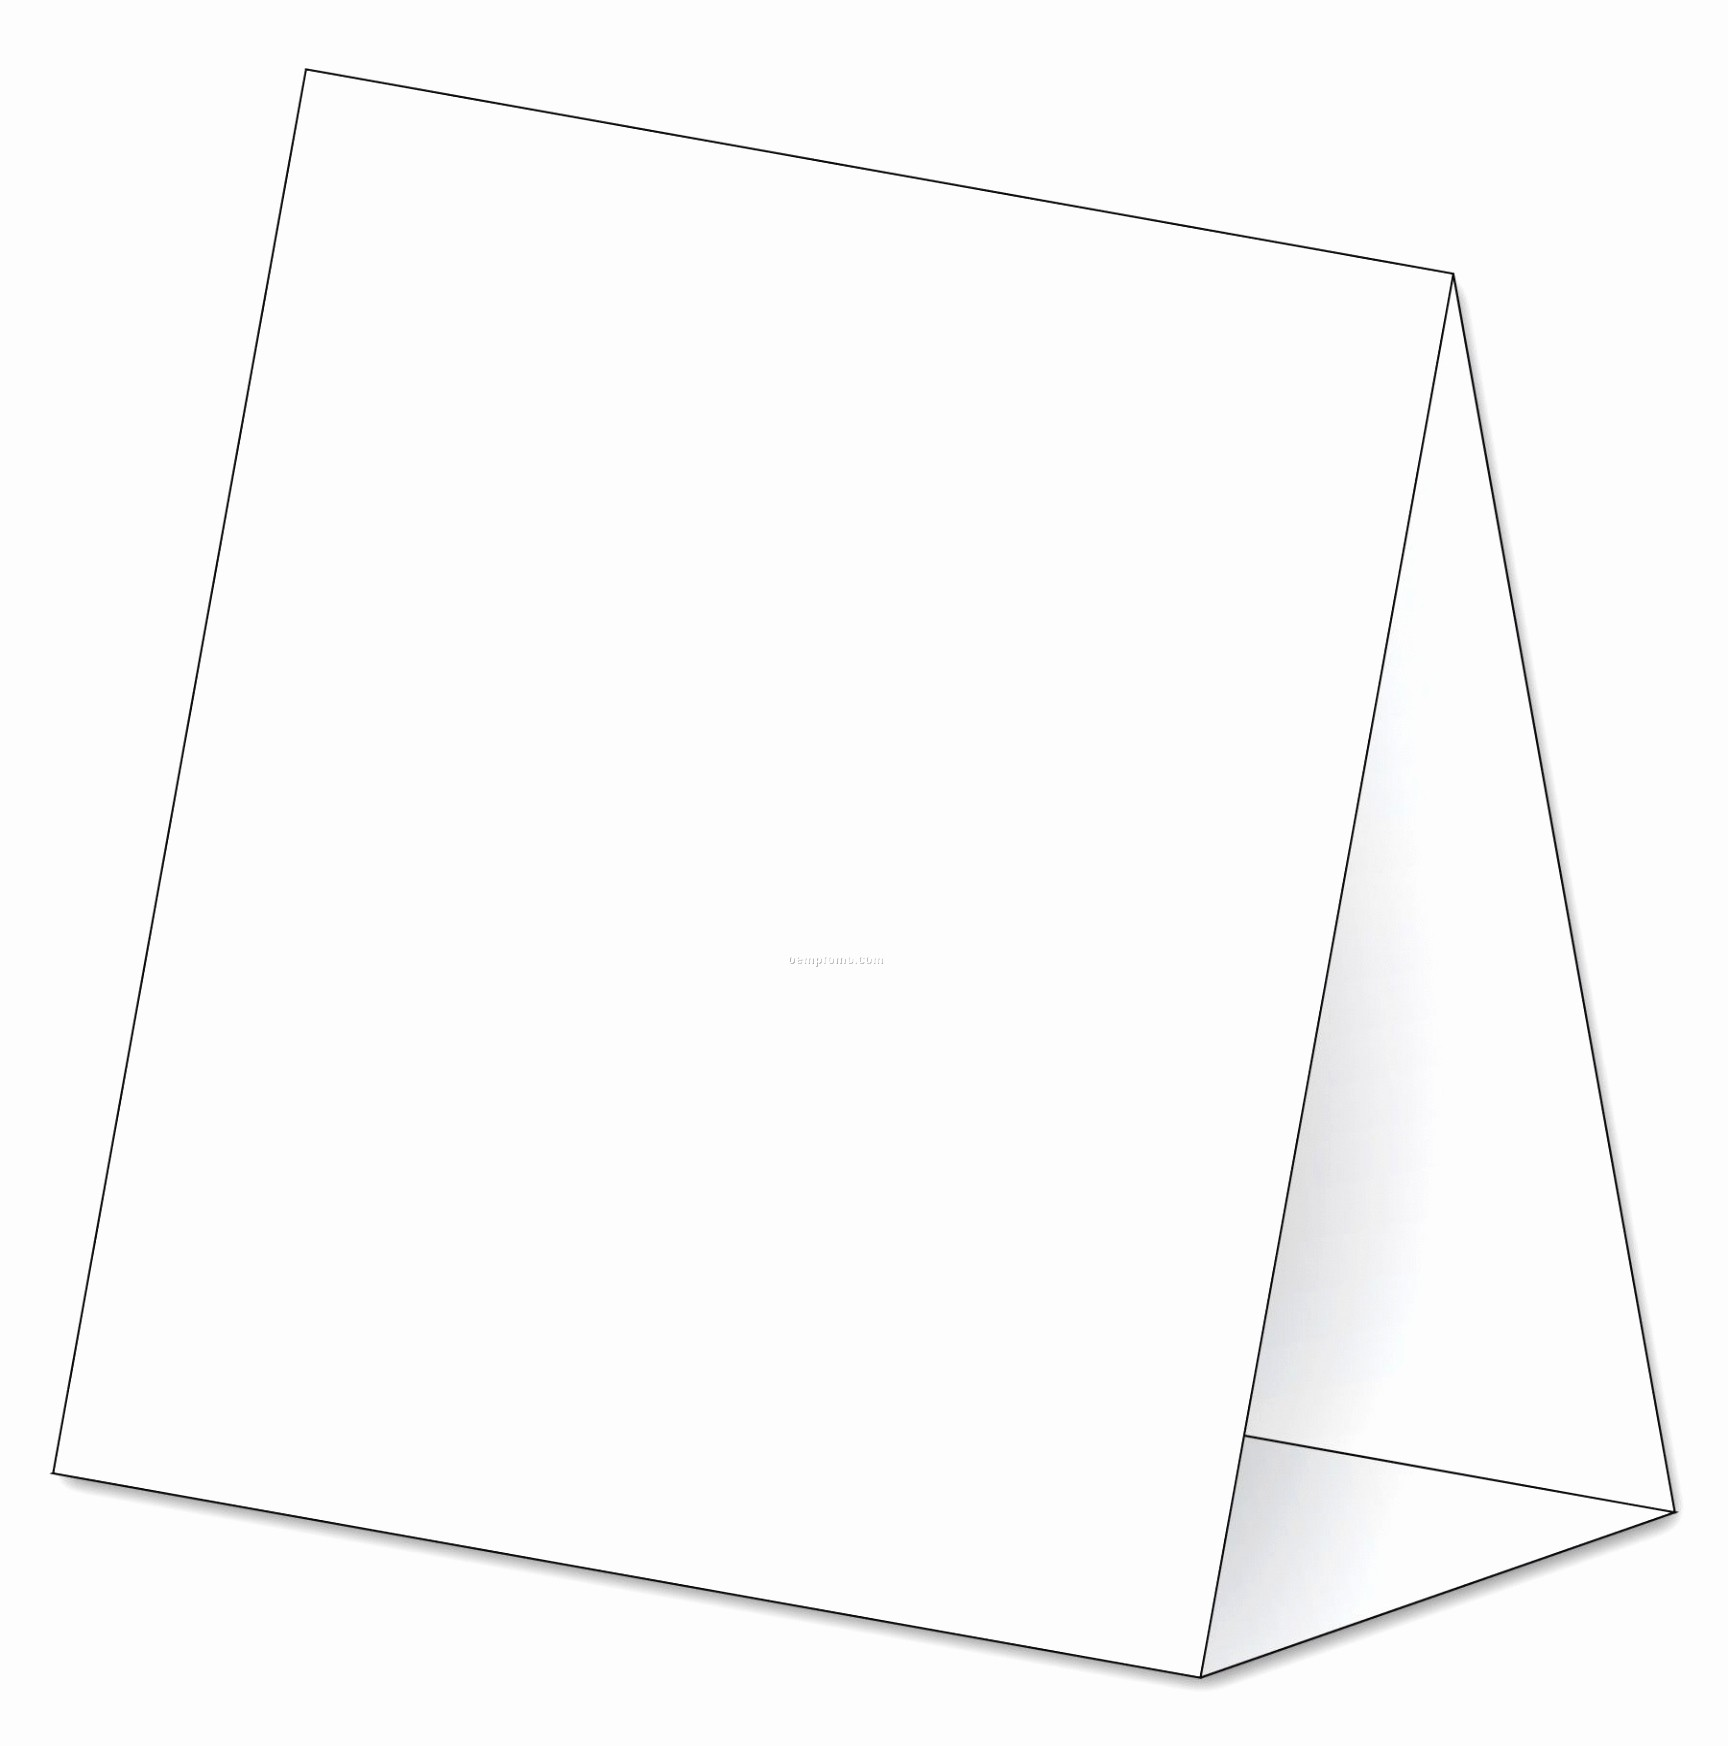 Table Tent Name Cards Template Inspirational 9 Tent Name Card Template Word Yoywt